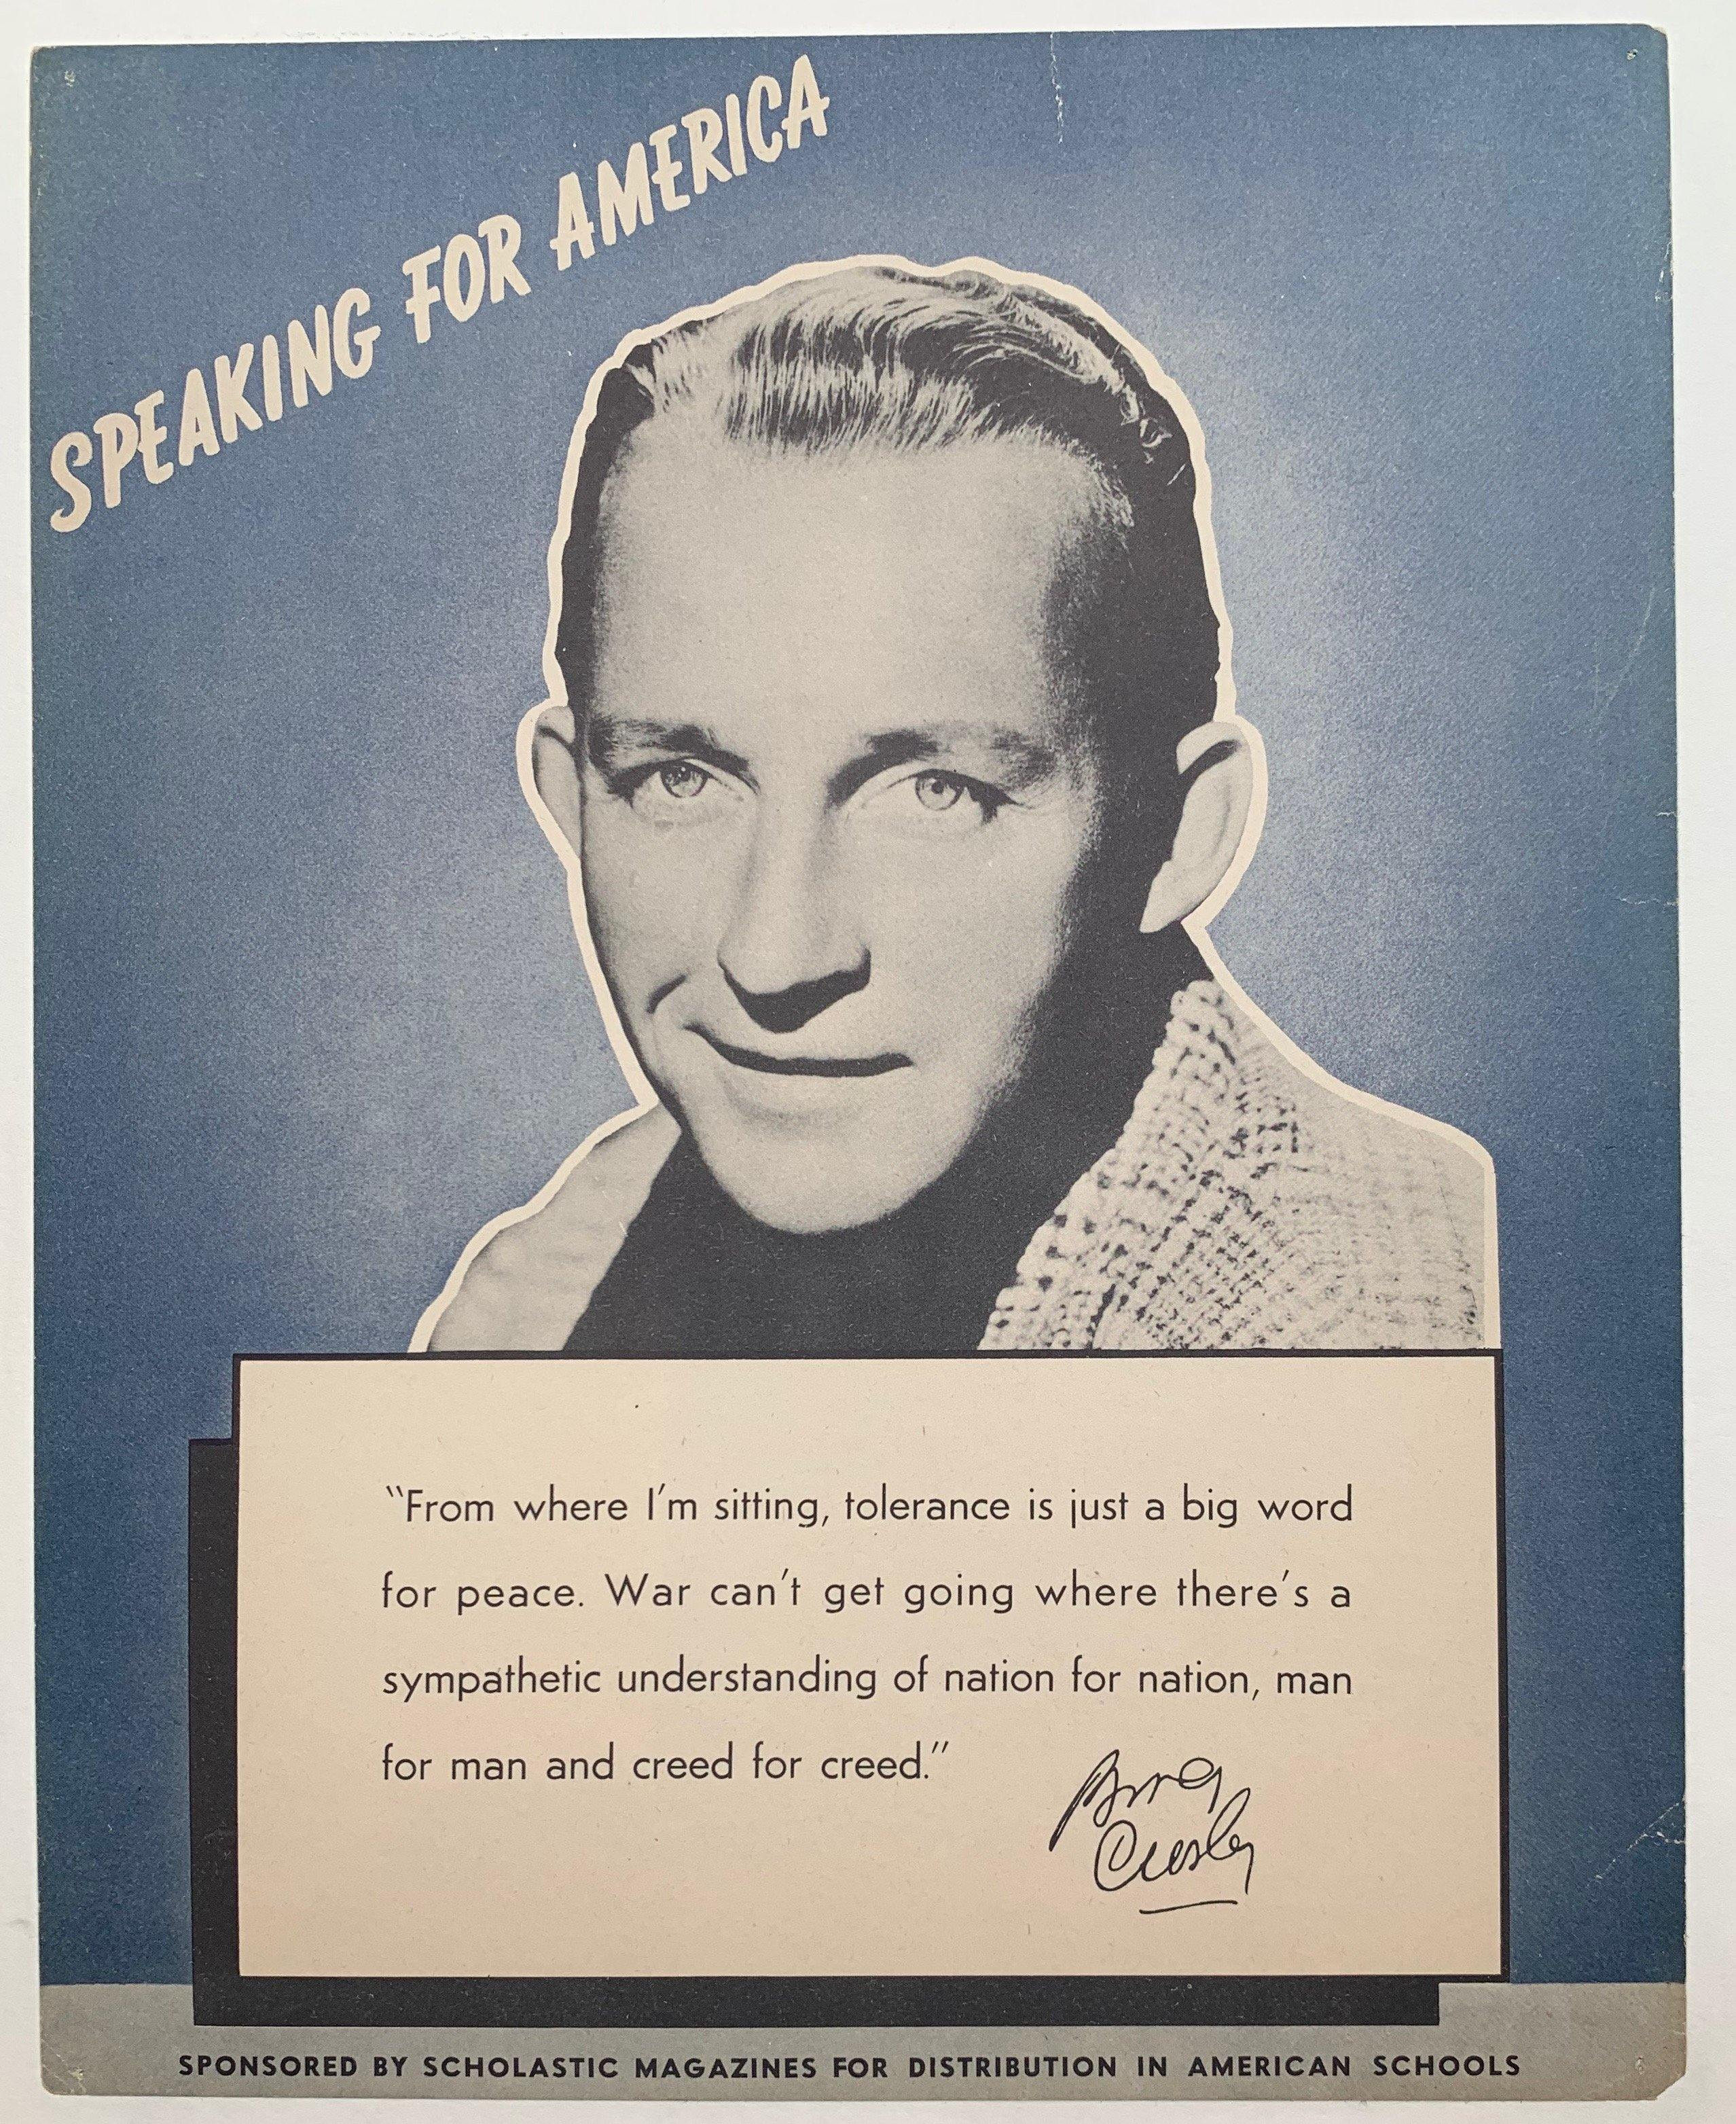 Speaking for America - Poster Museum